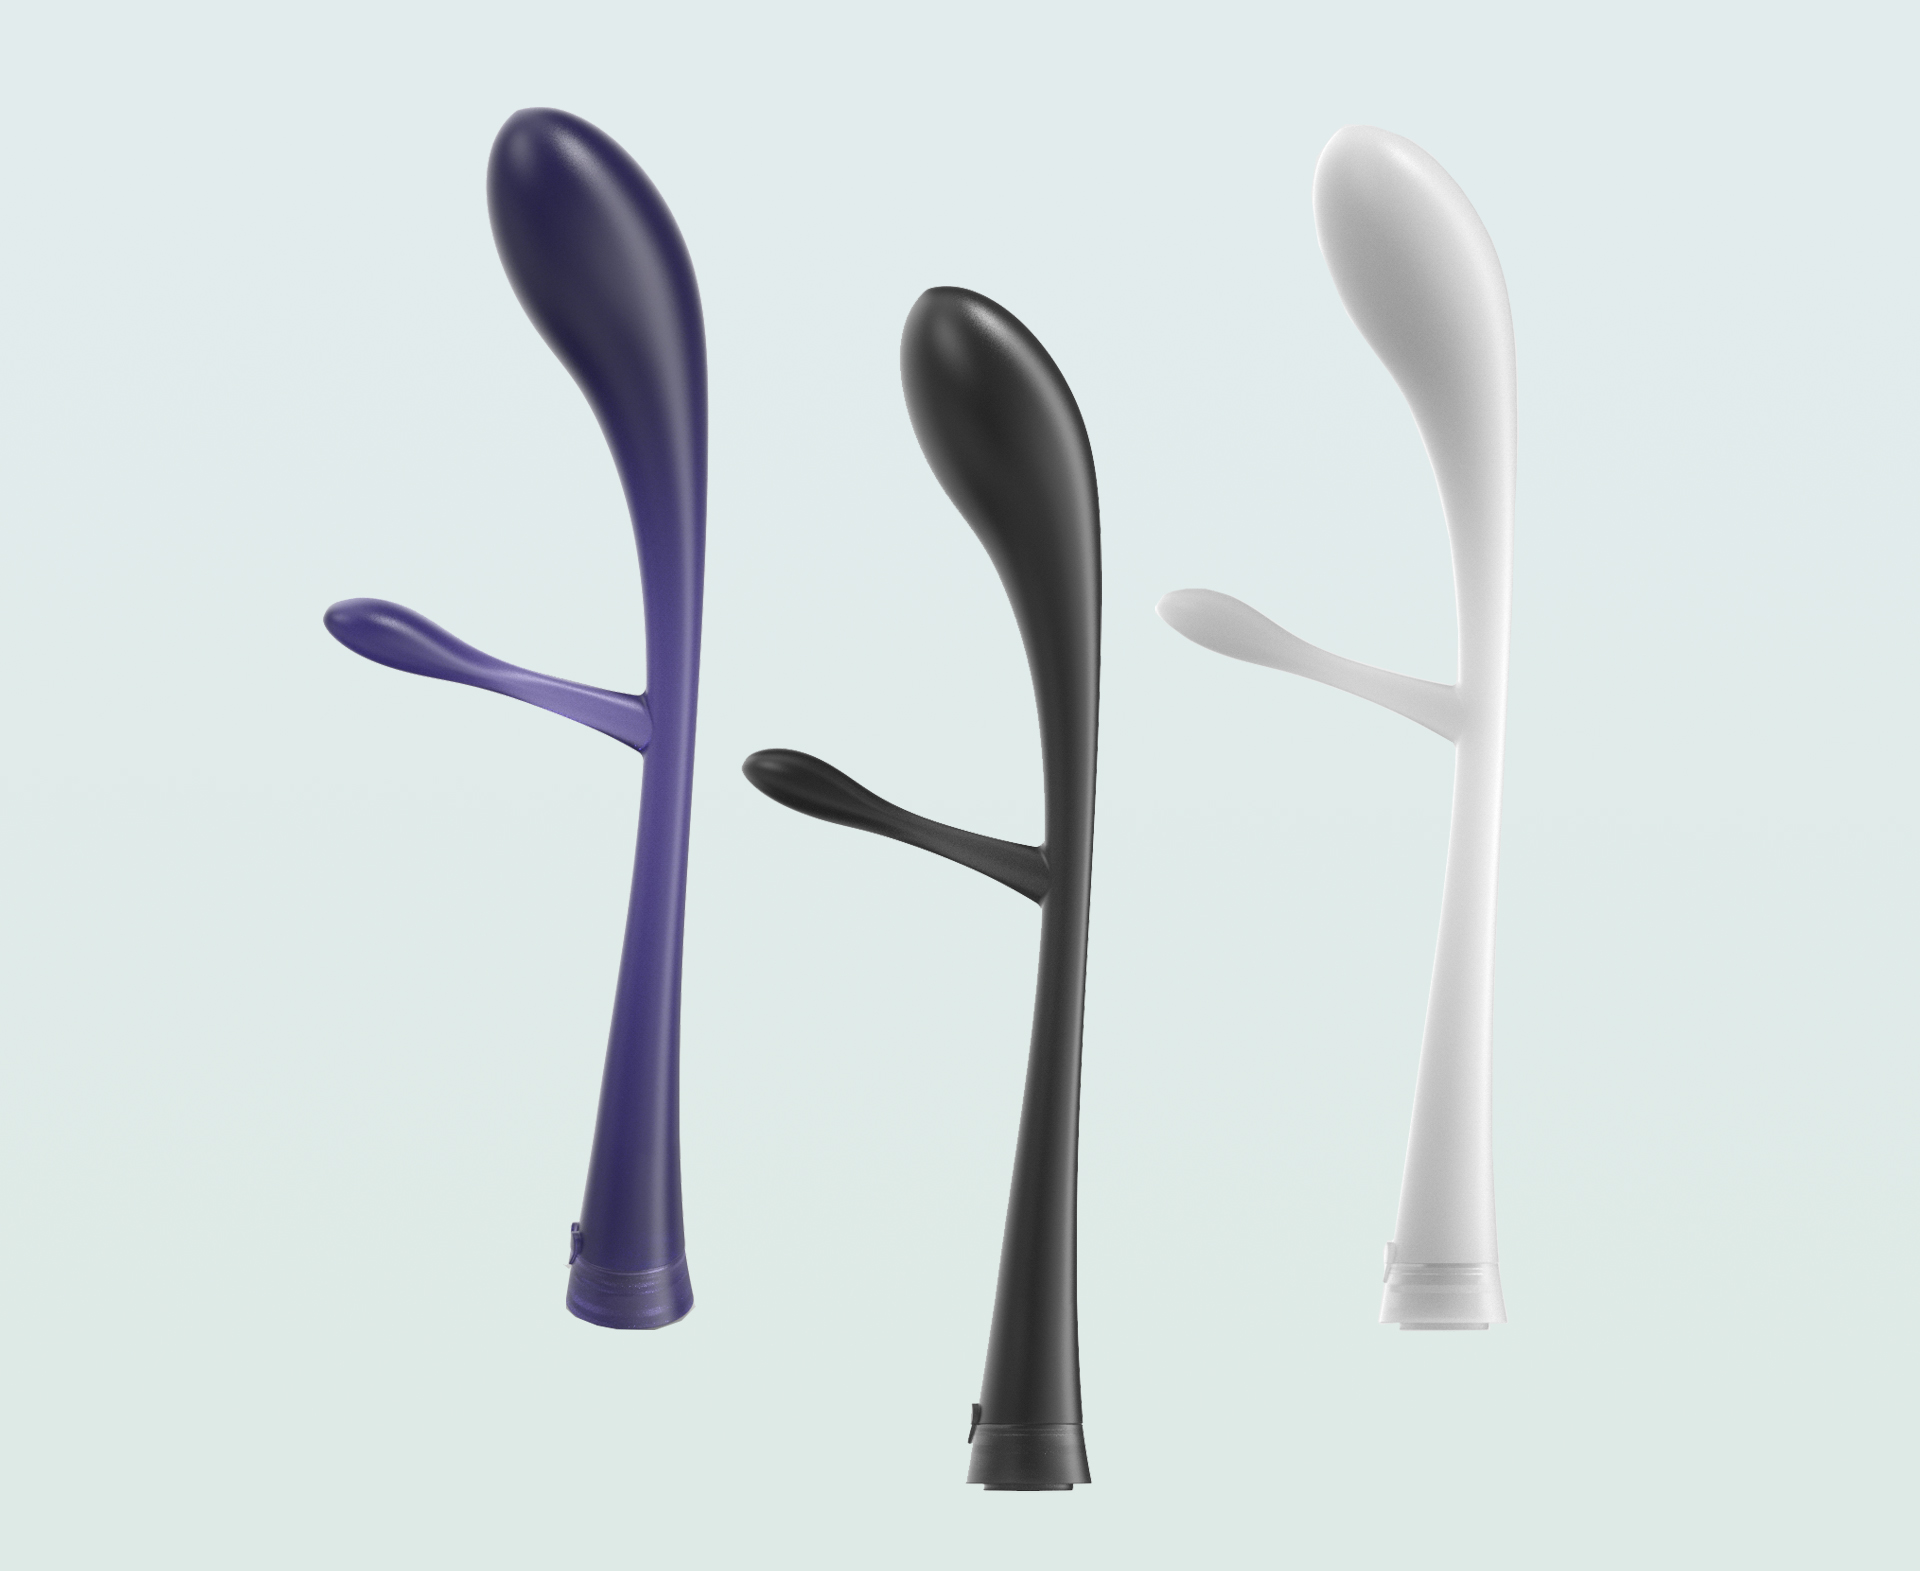 Okamei All Colors | Erosscia | Turn your rechargeable toothbrush into a luxury vibrator